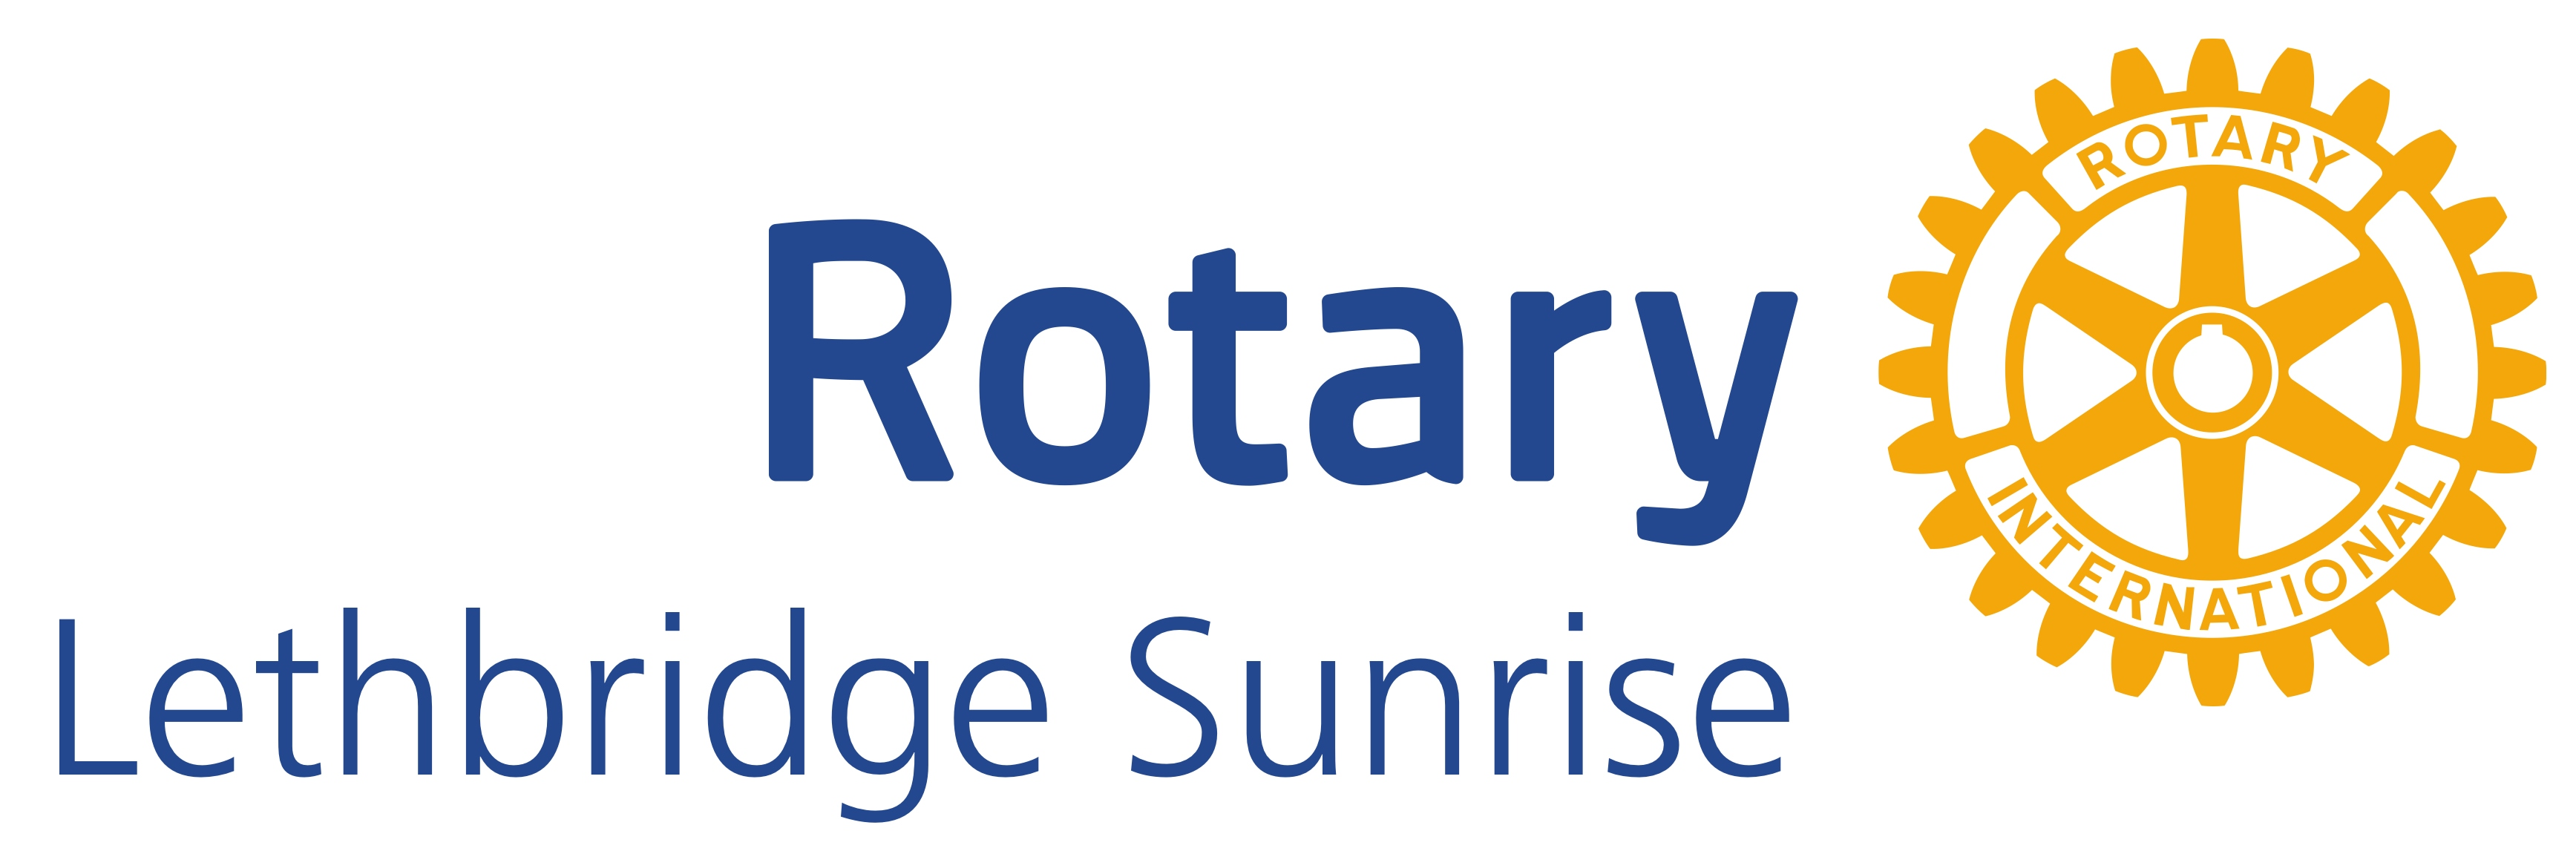 Rotary_Lethbridge Sunrise